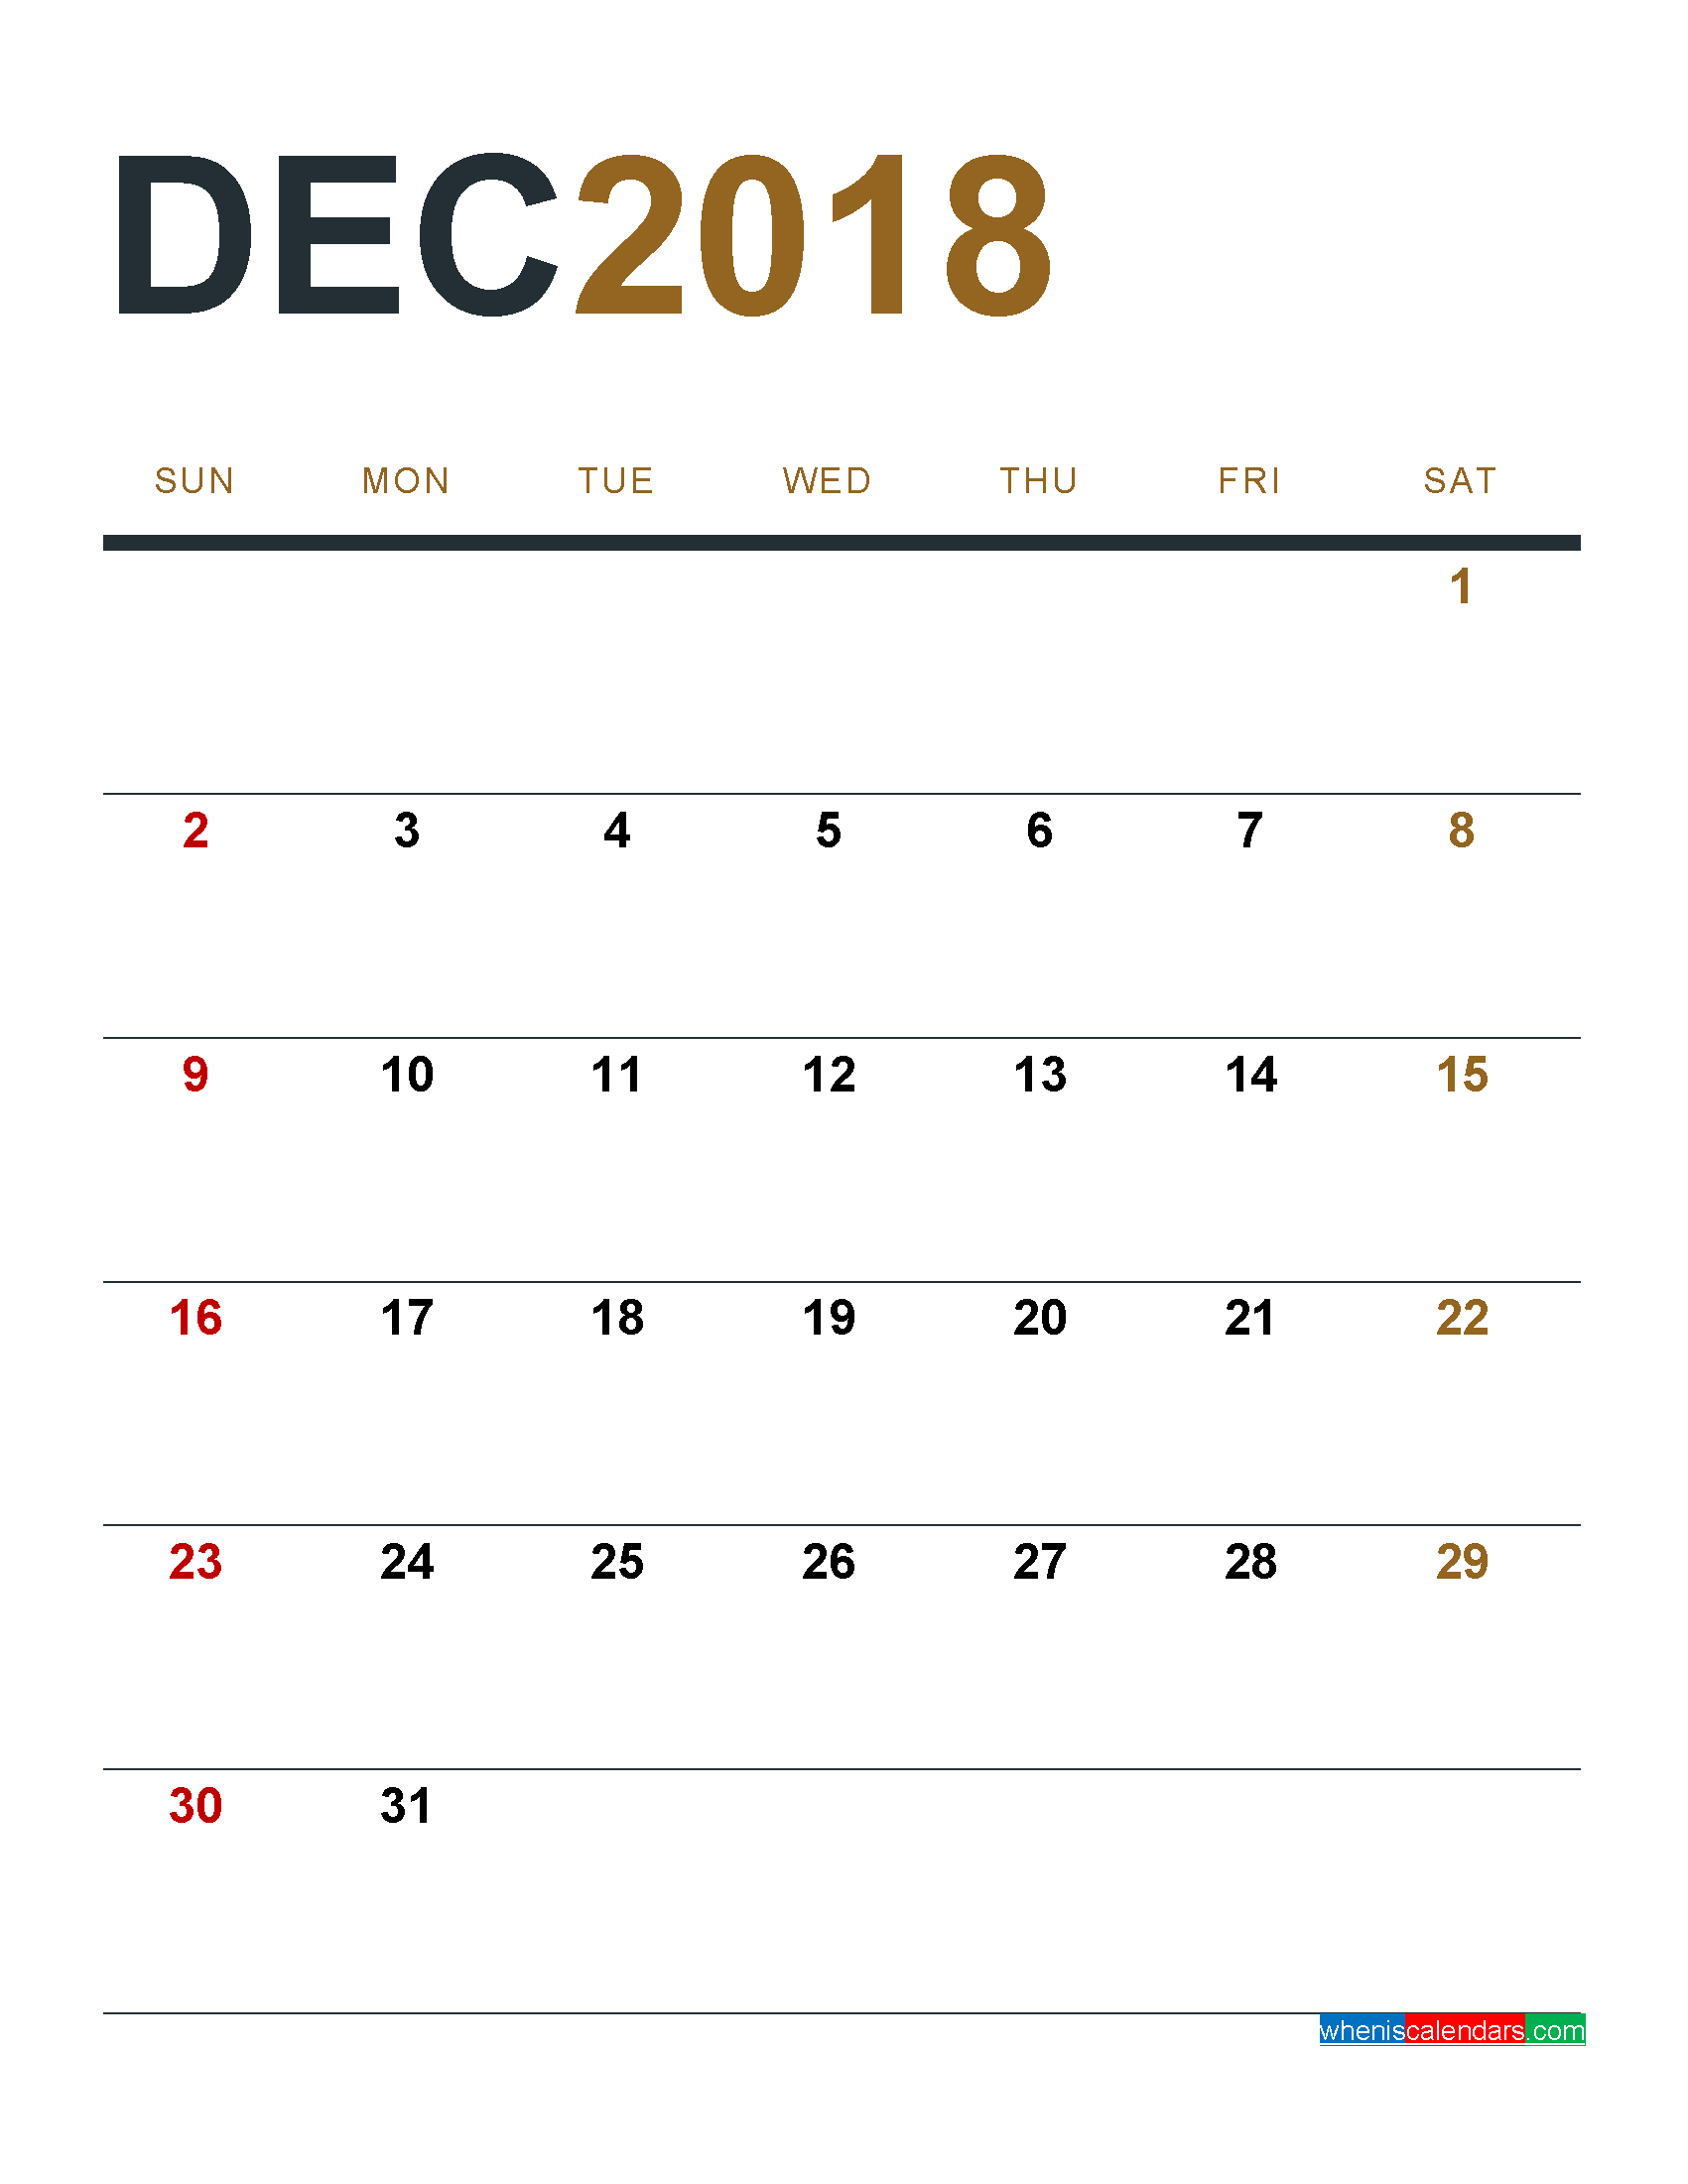 image about December Printable Calendar Pdf identify December 2018 Calendar Printable as PDF and Picture 1 Thirty day period 1